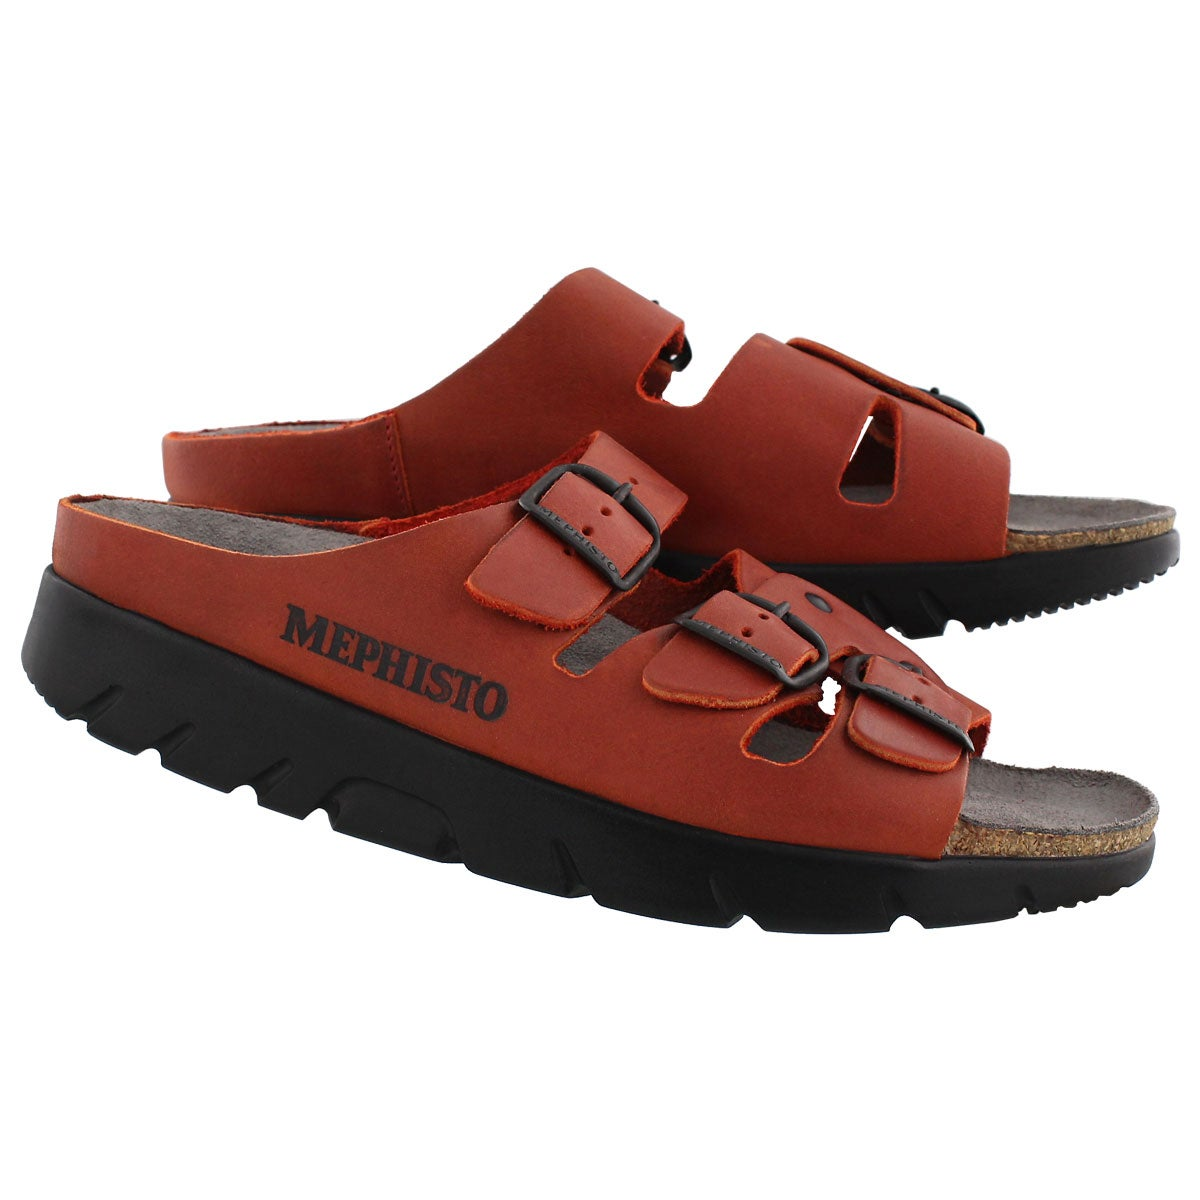 f03672ae12d068 chaussures mephisto liege